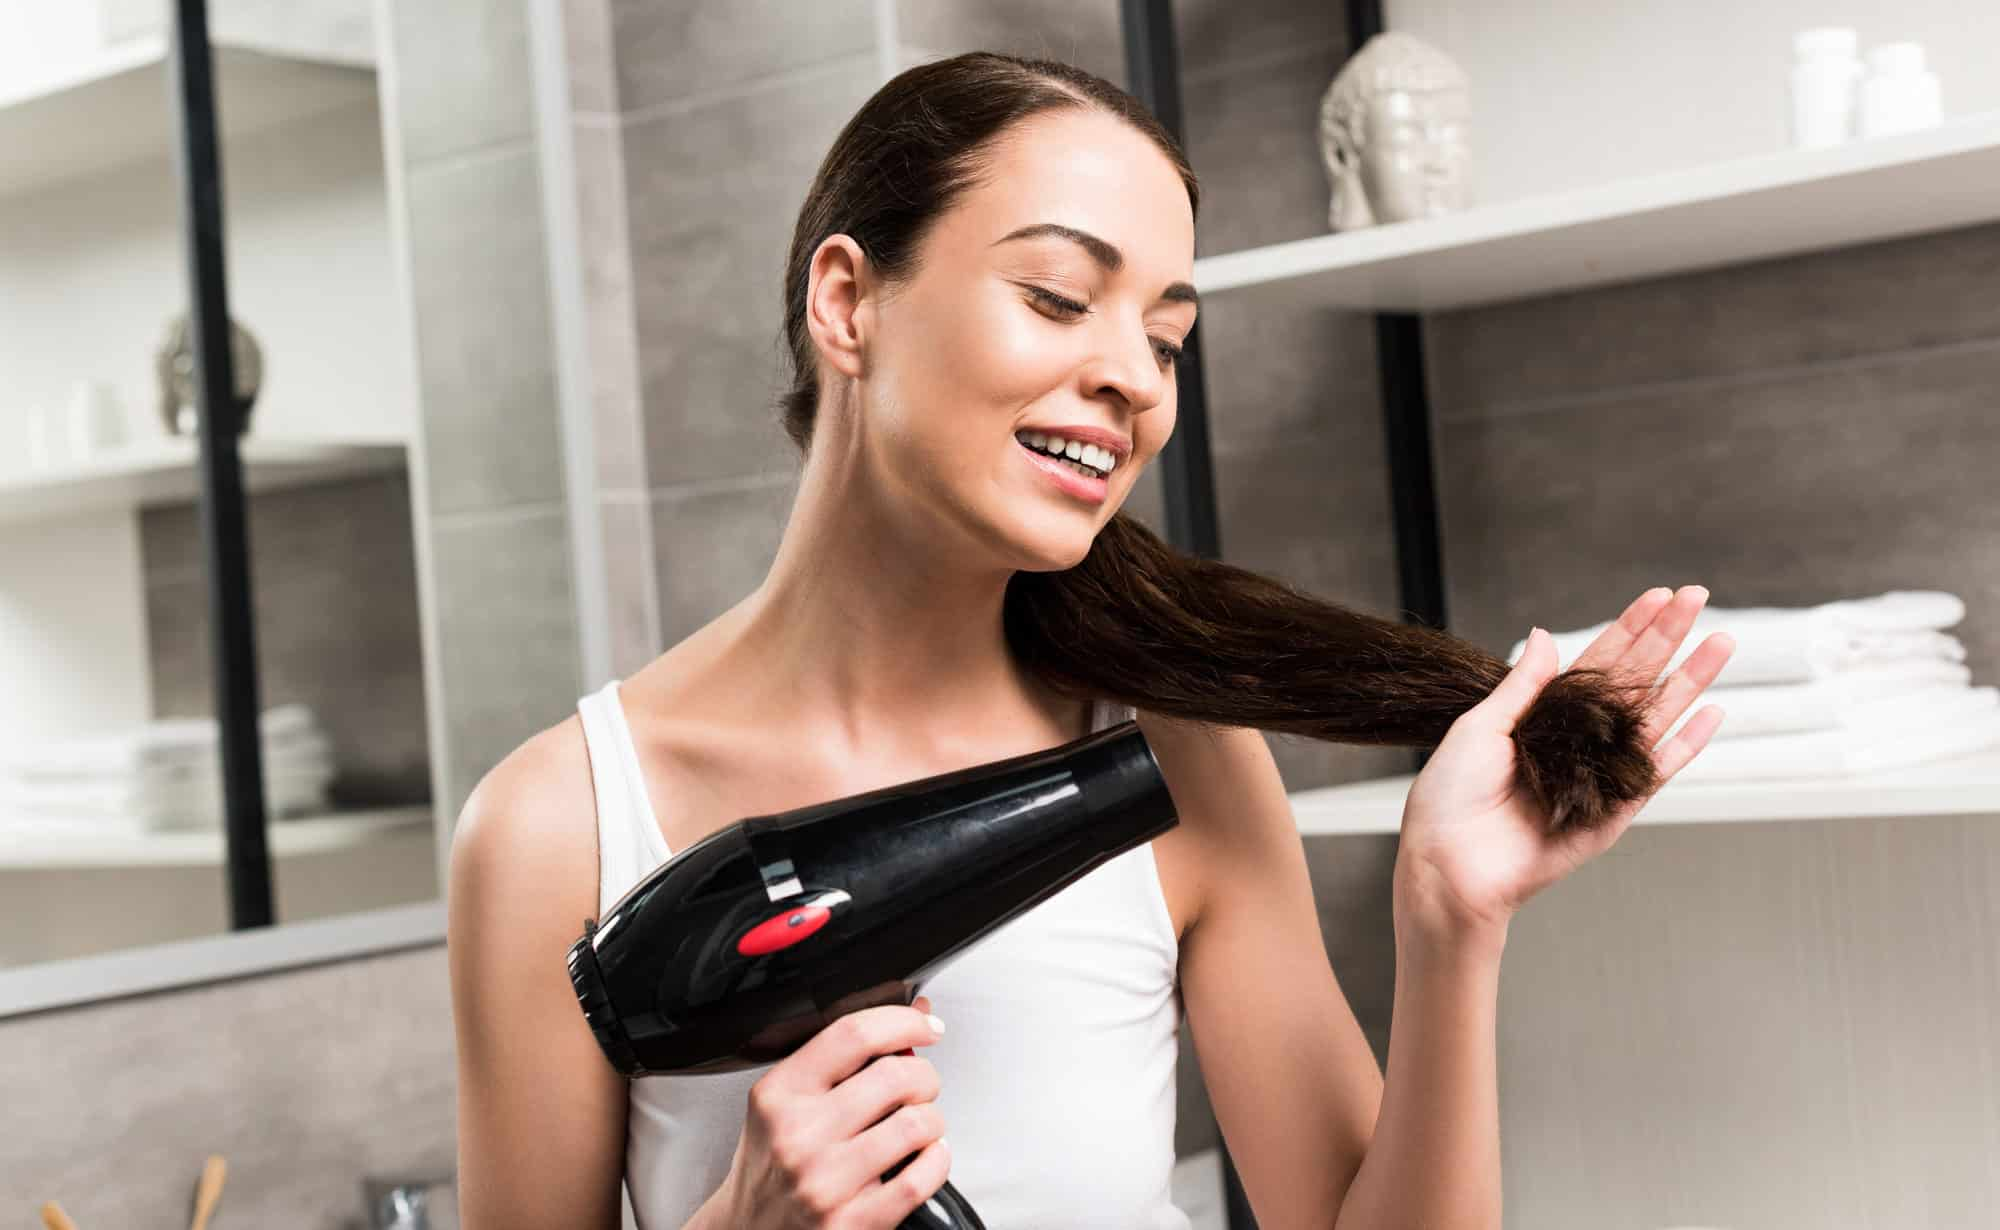 What To Look For When Buying a Hair Dryer